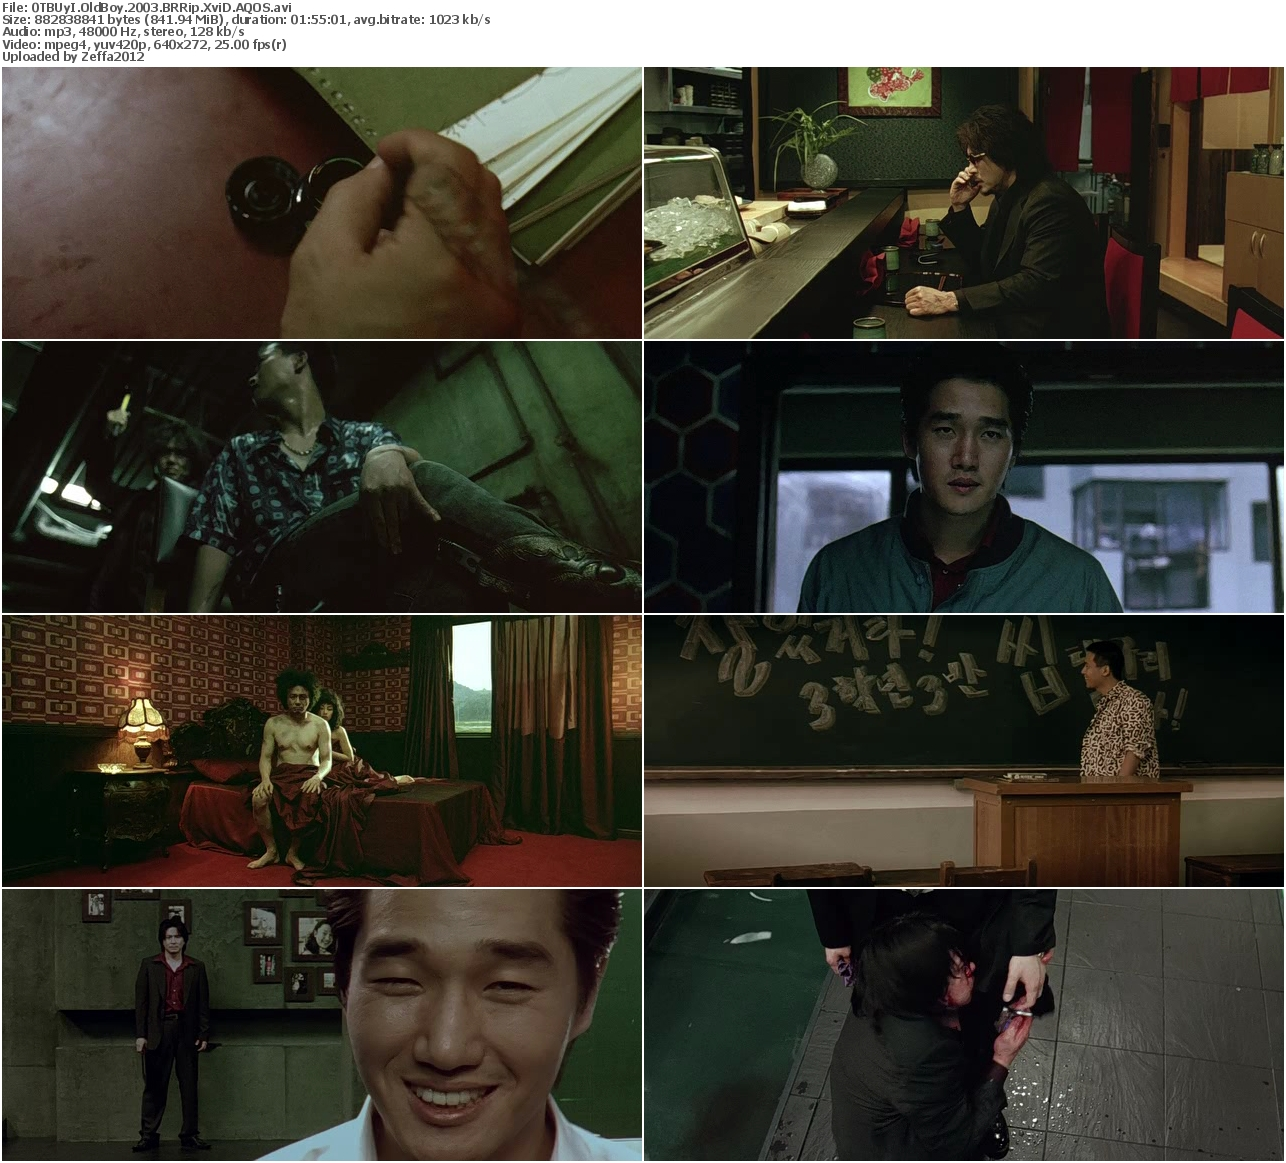 [MULTI] OldBoy (2003) BRRip XviD-AQOS